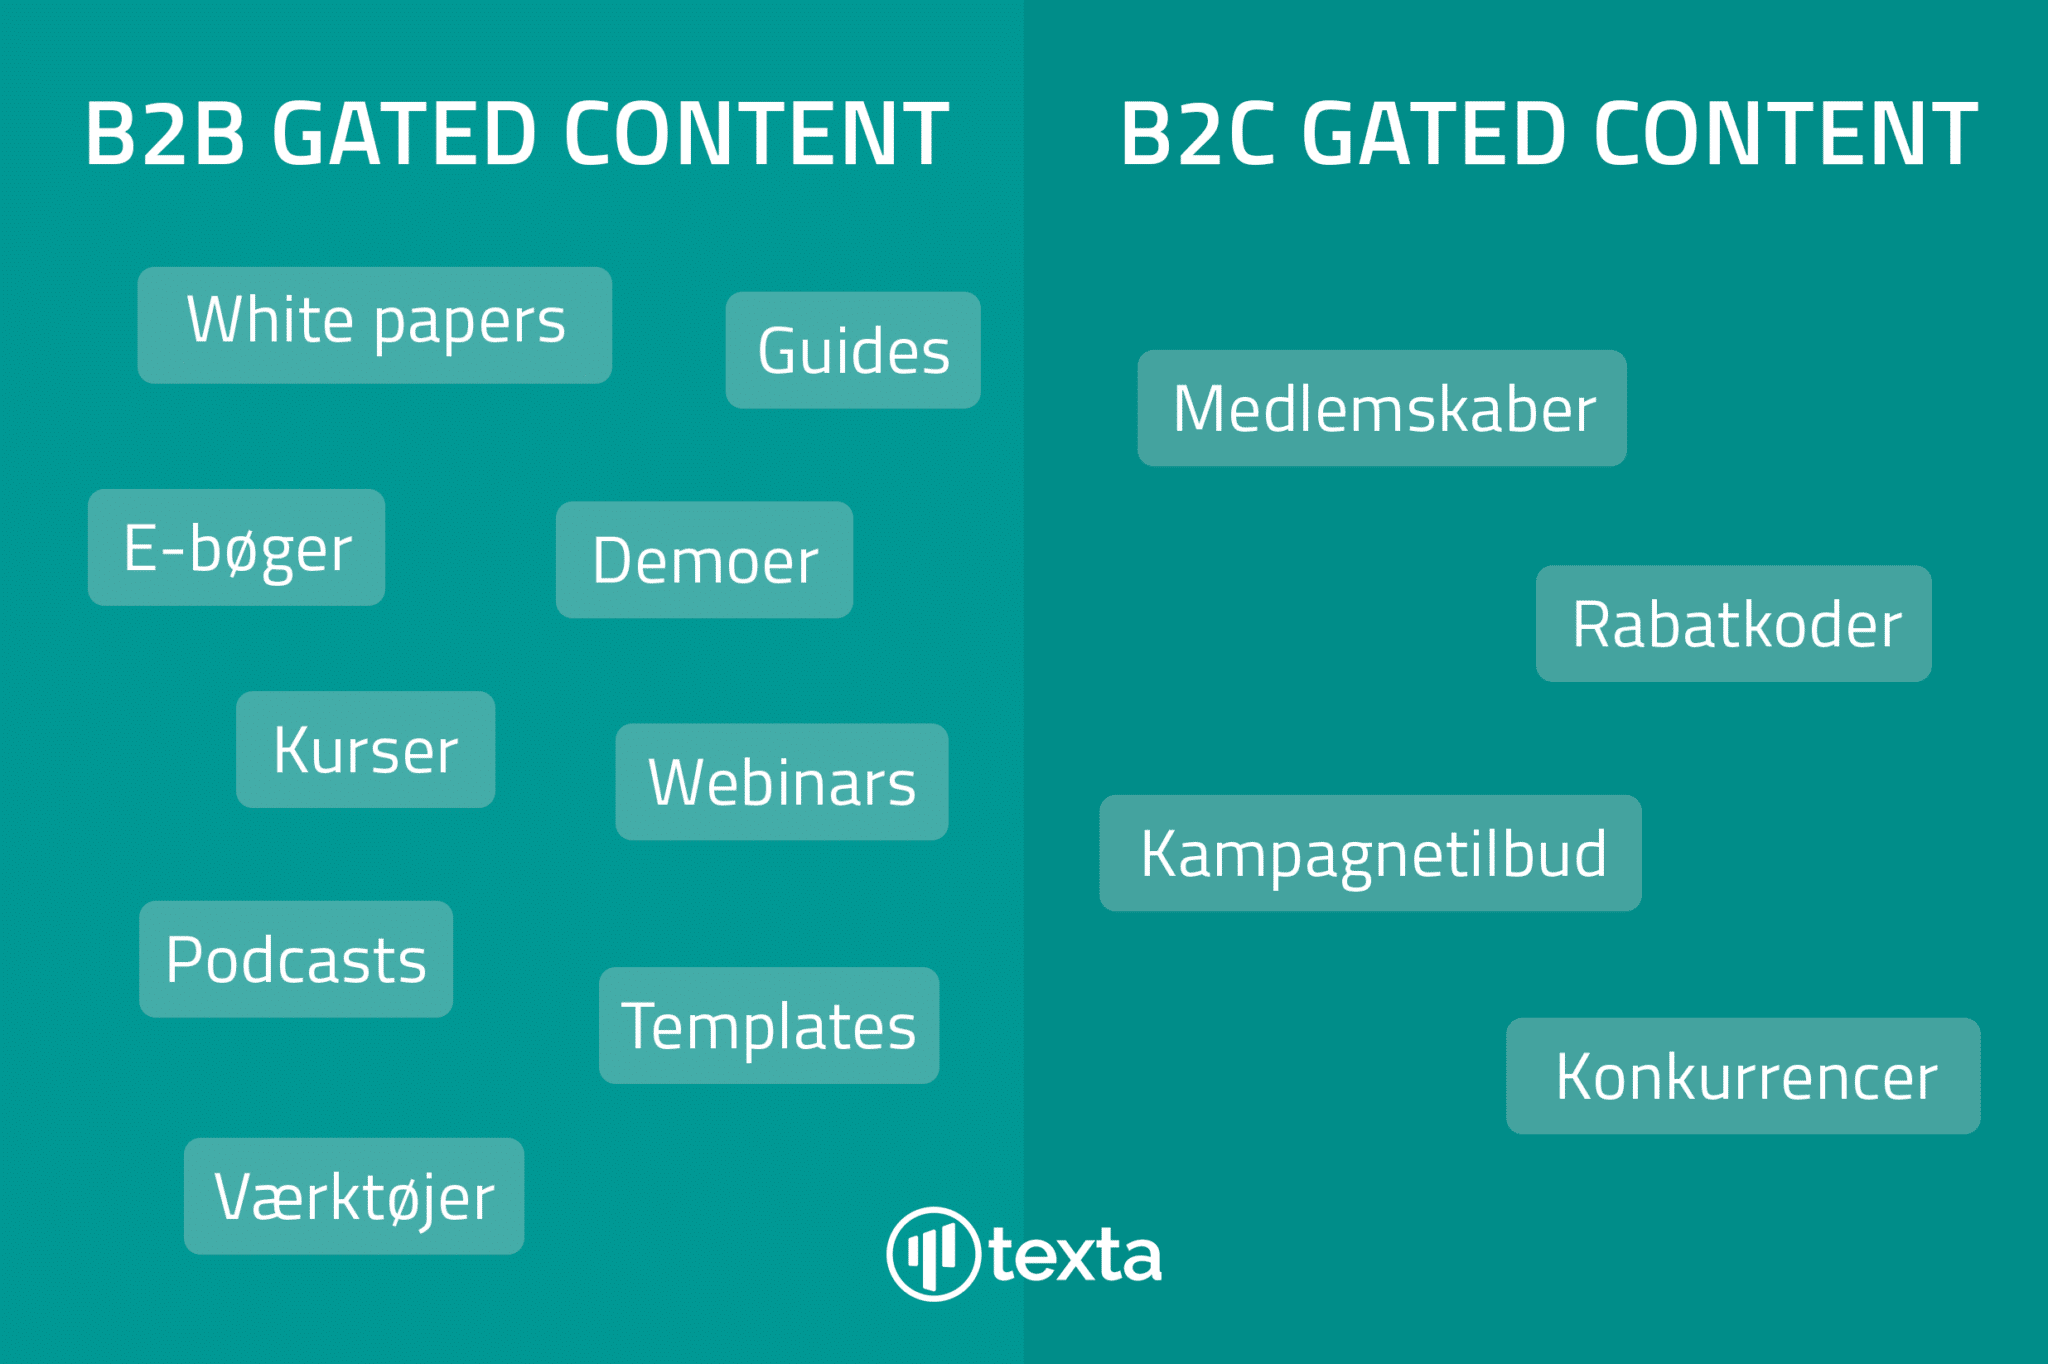 Kendetegn for gated conten for B2B og B2C